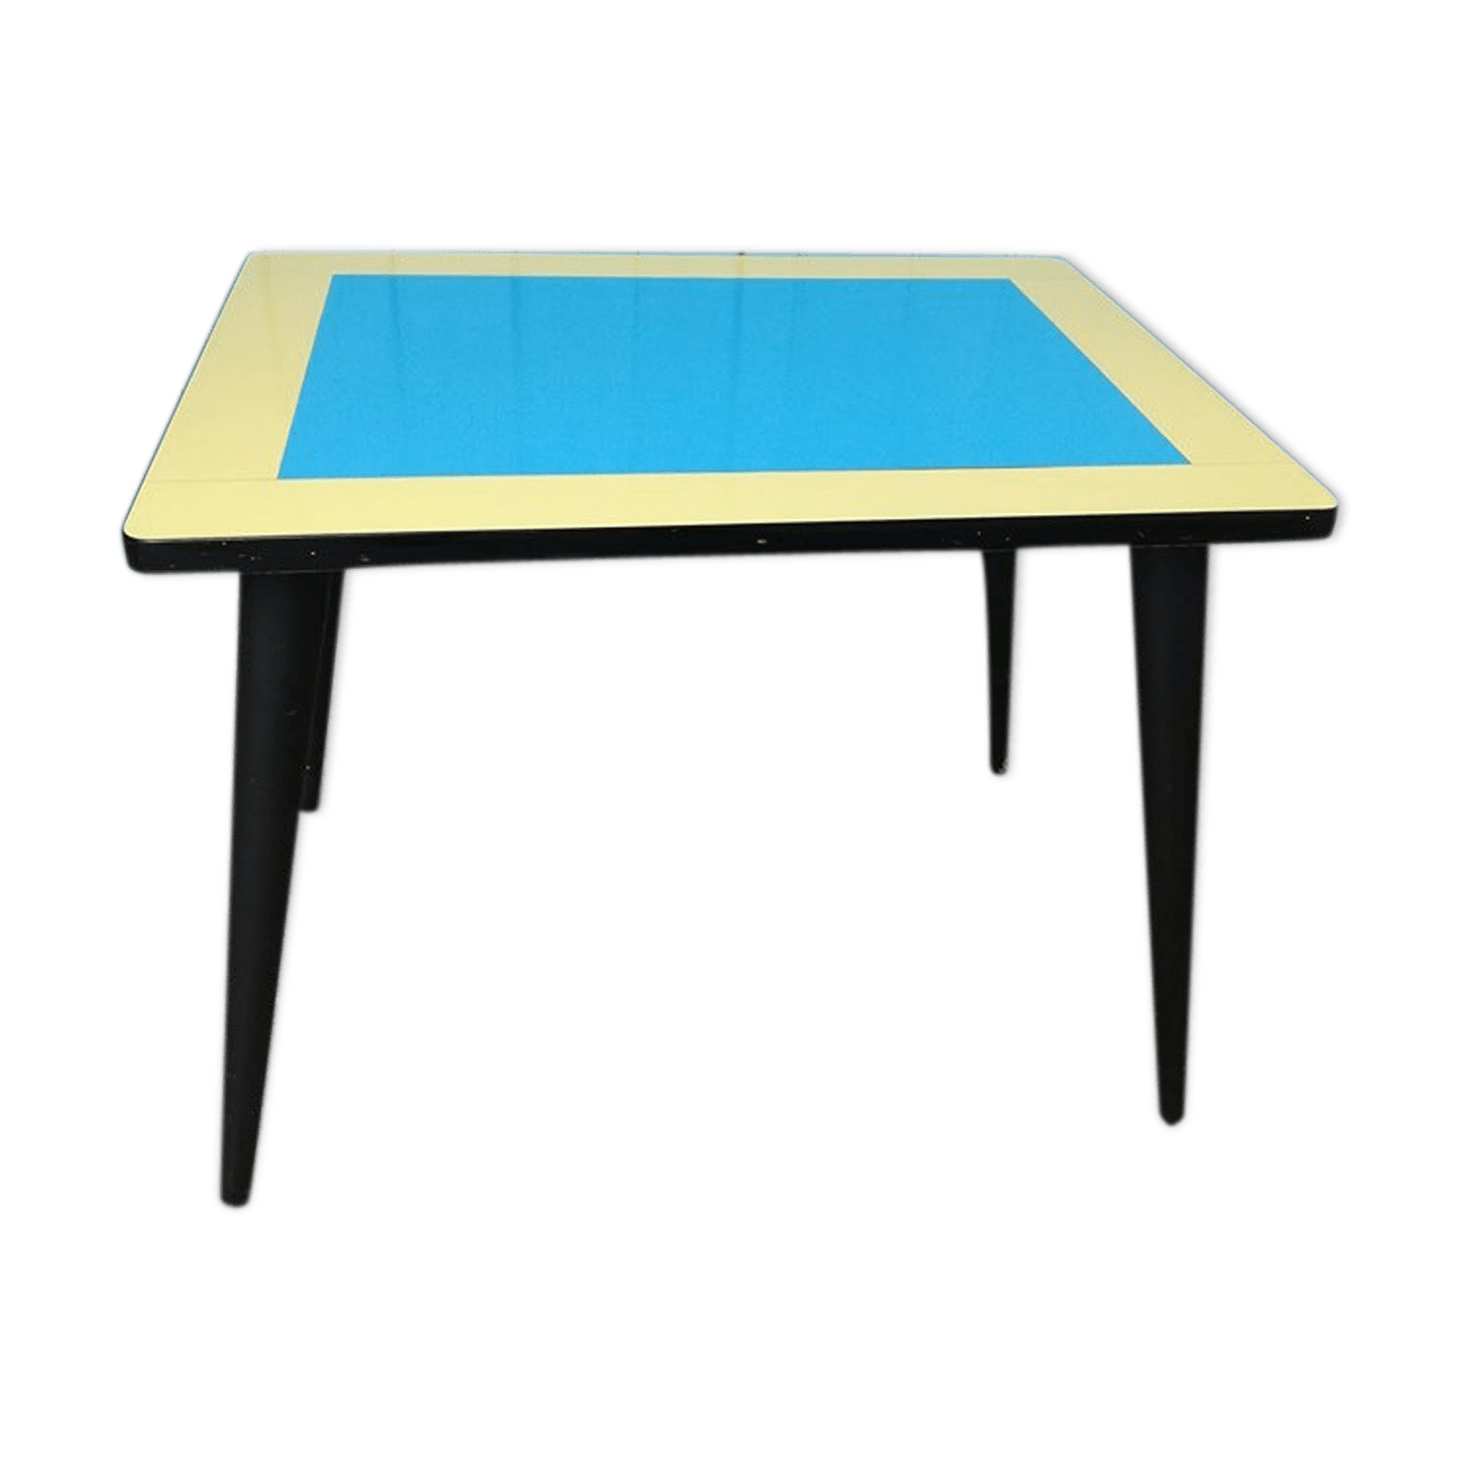 Tables Pliantes Carrefour Table Pliante Formica Table Formica Chaises Occasion With